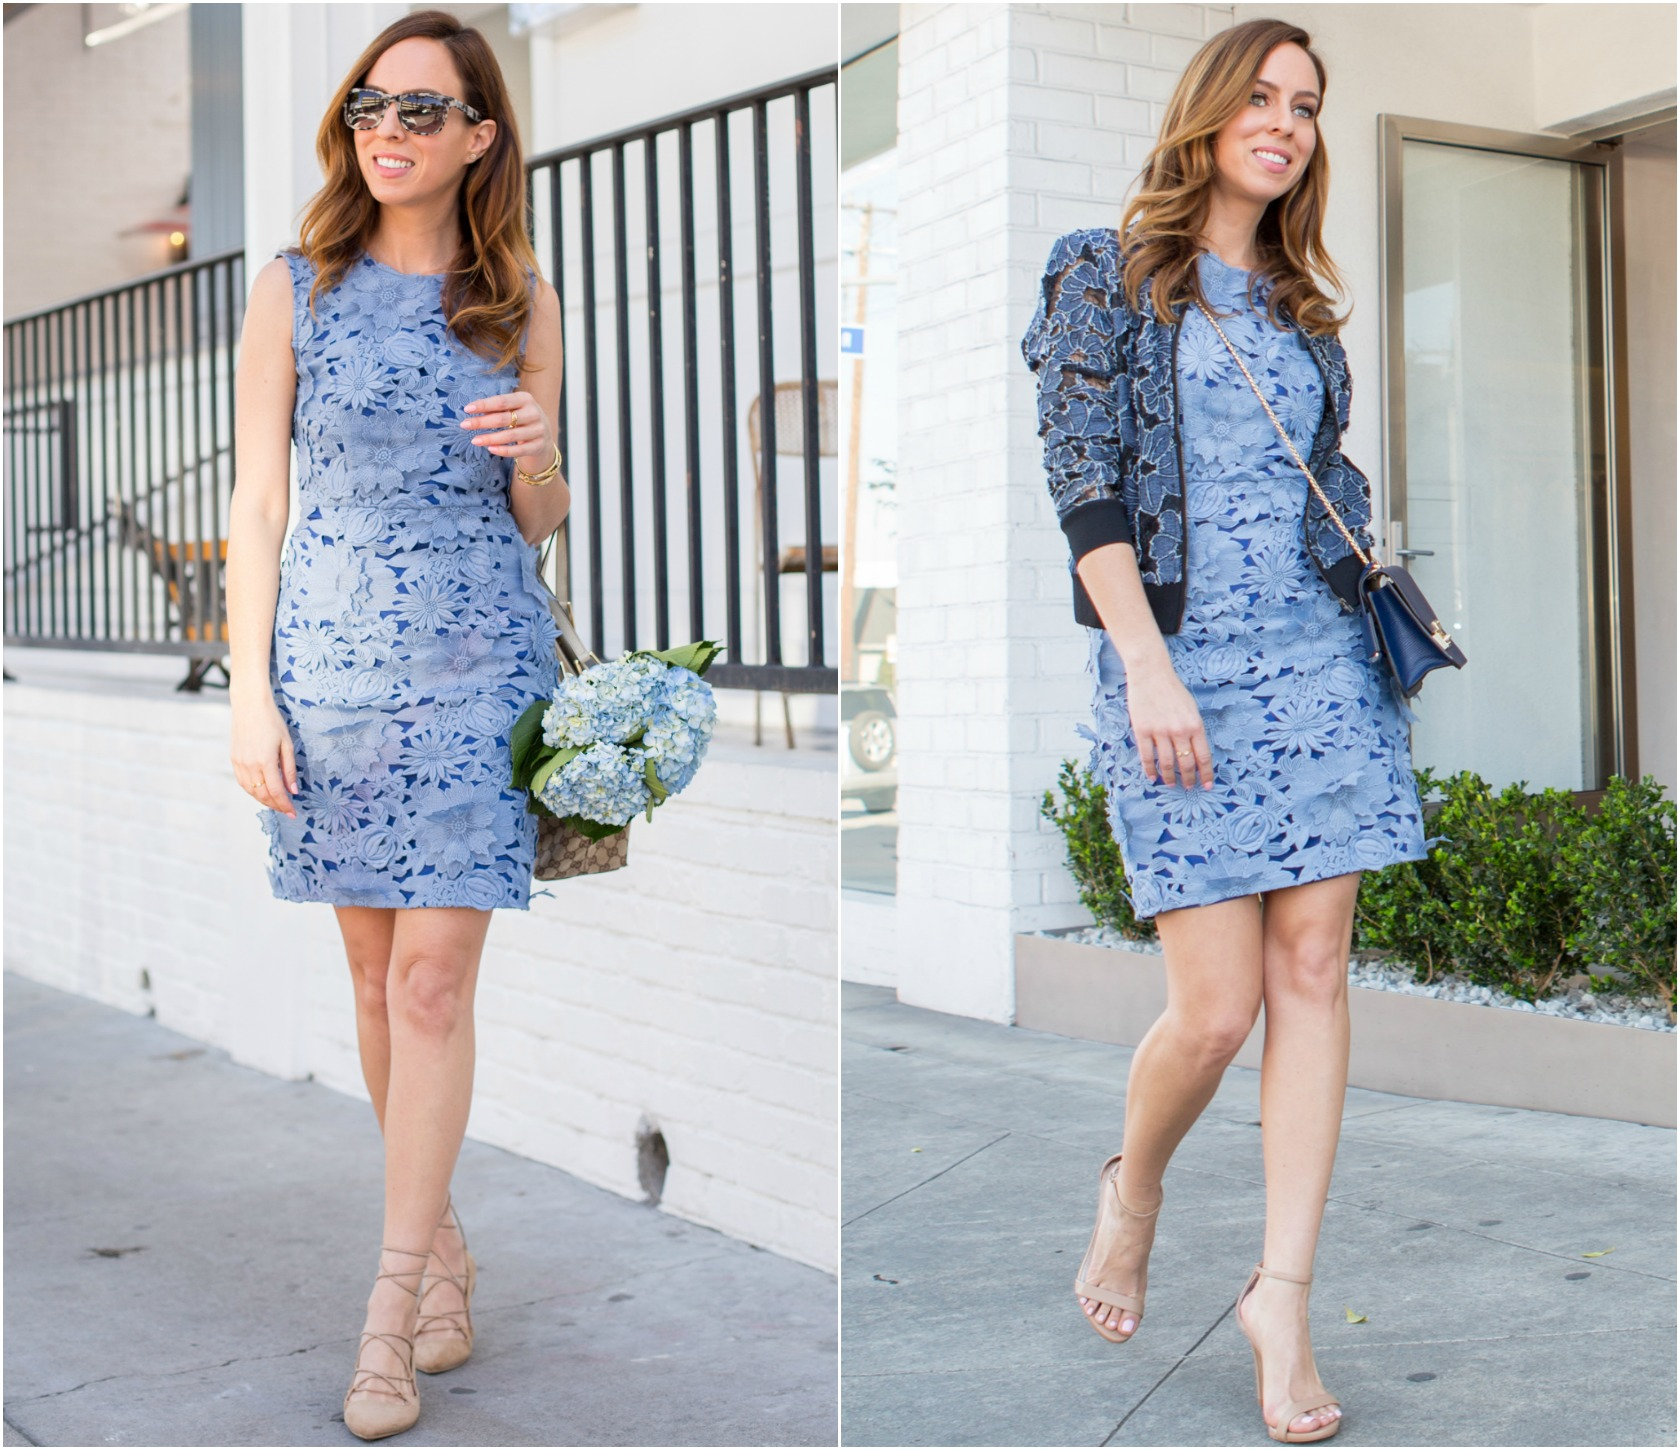 Sydne Style shows how to wear a blue lace dress from day to night